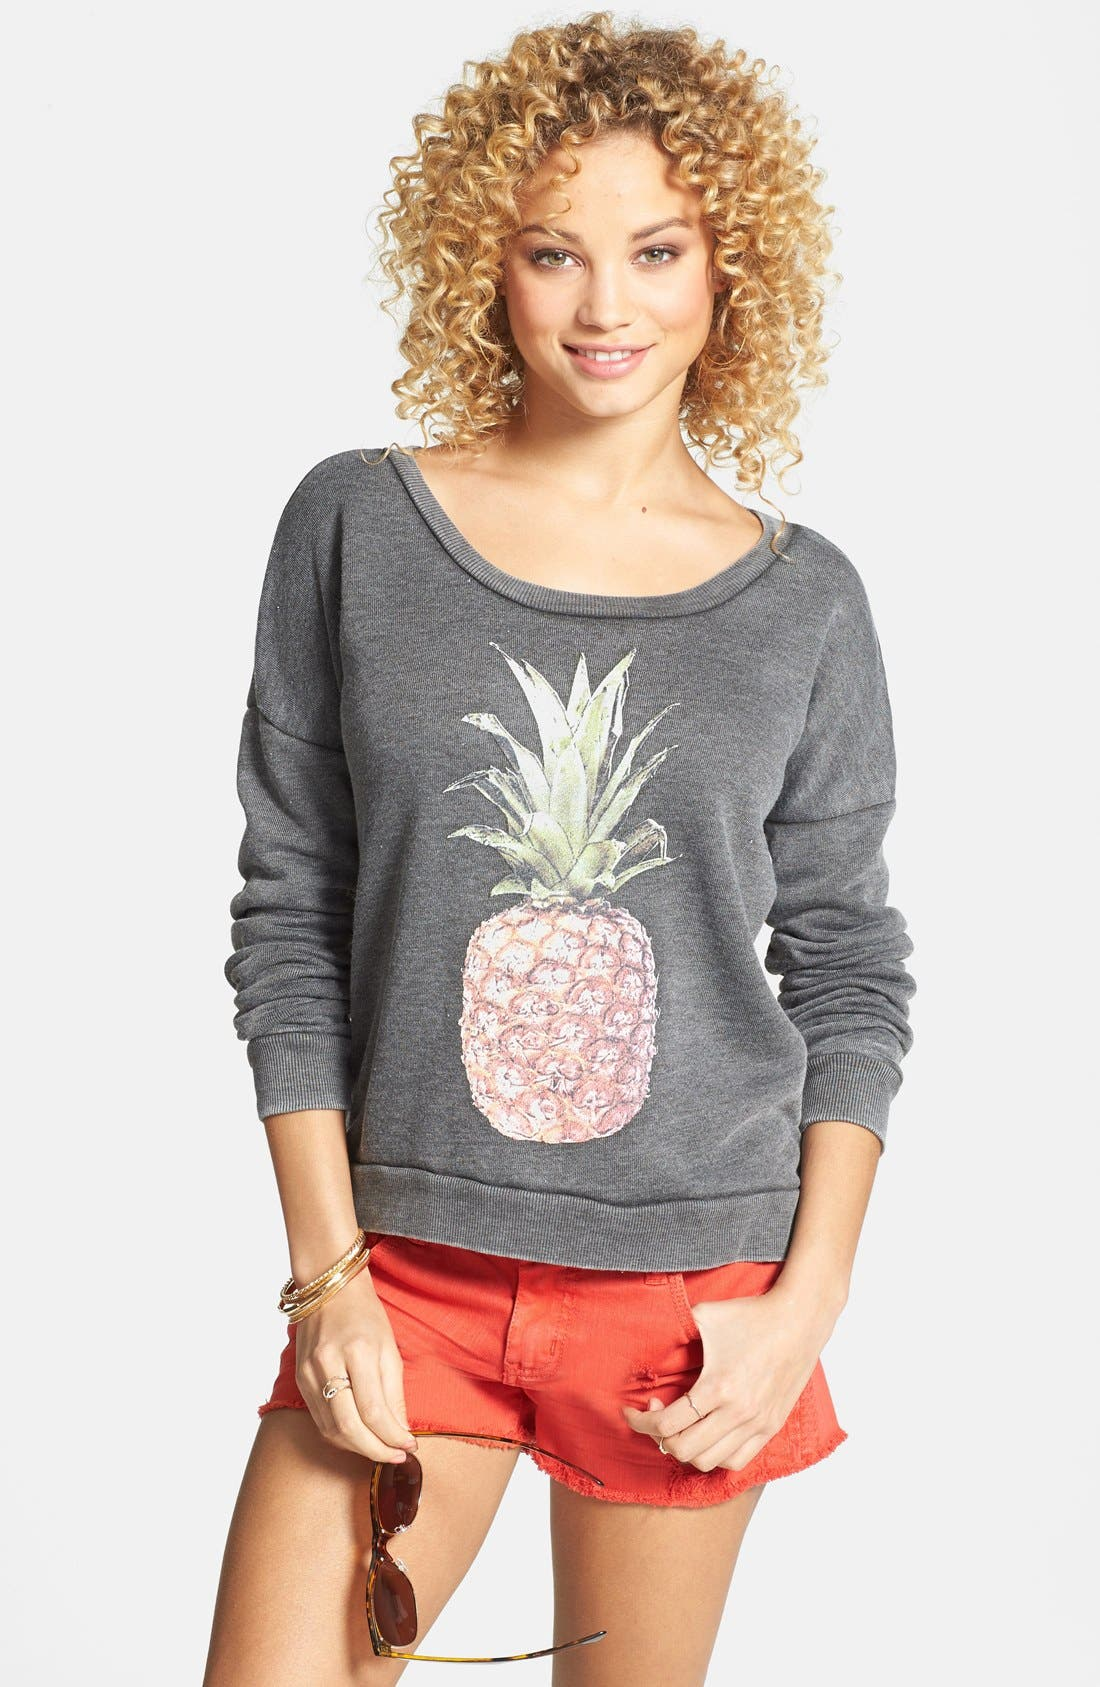 Alternate Image 1 Selected - Billabong 'She Sells' Pineapple Print Pullover (Juniors) (Online Only)